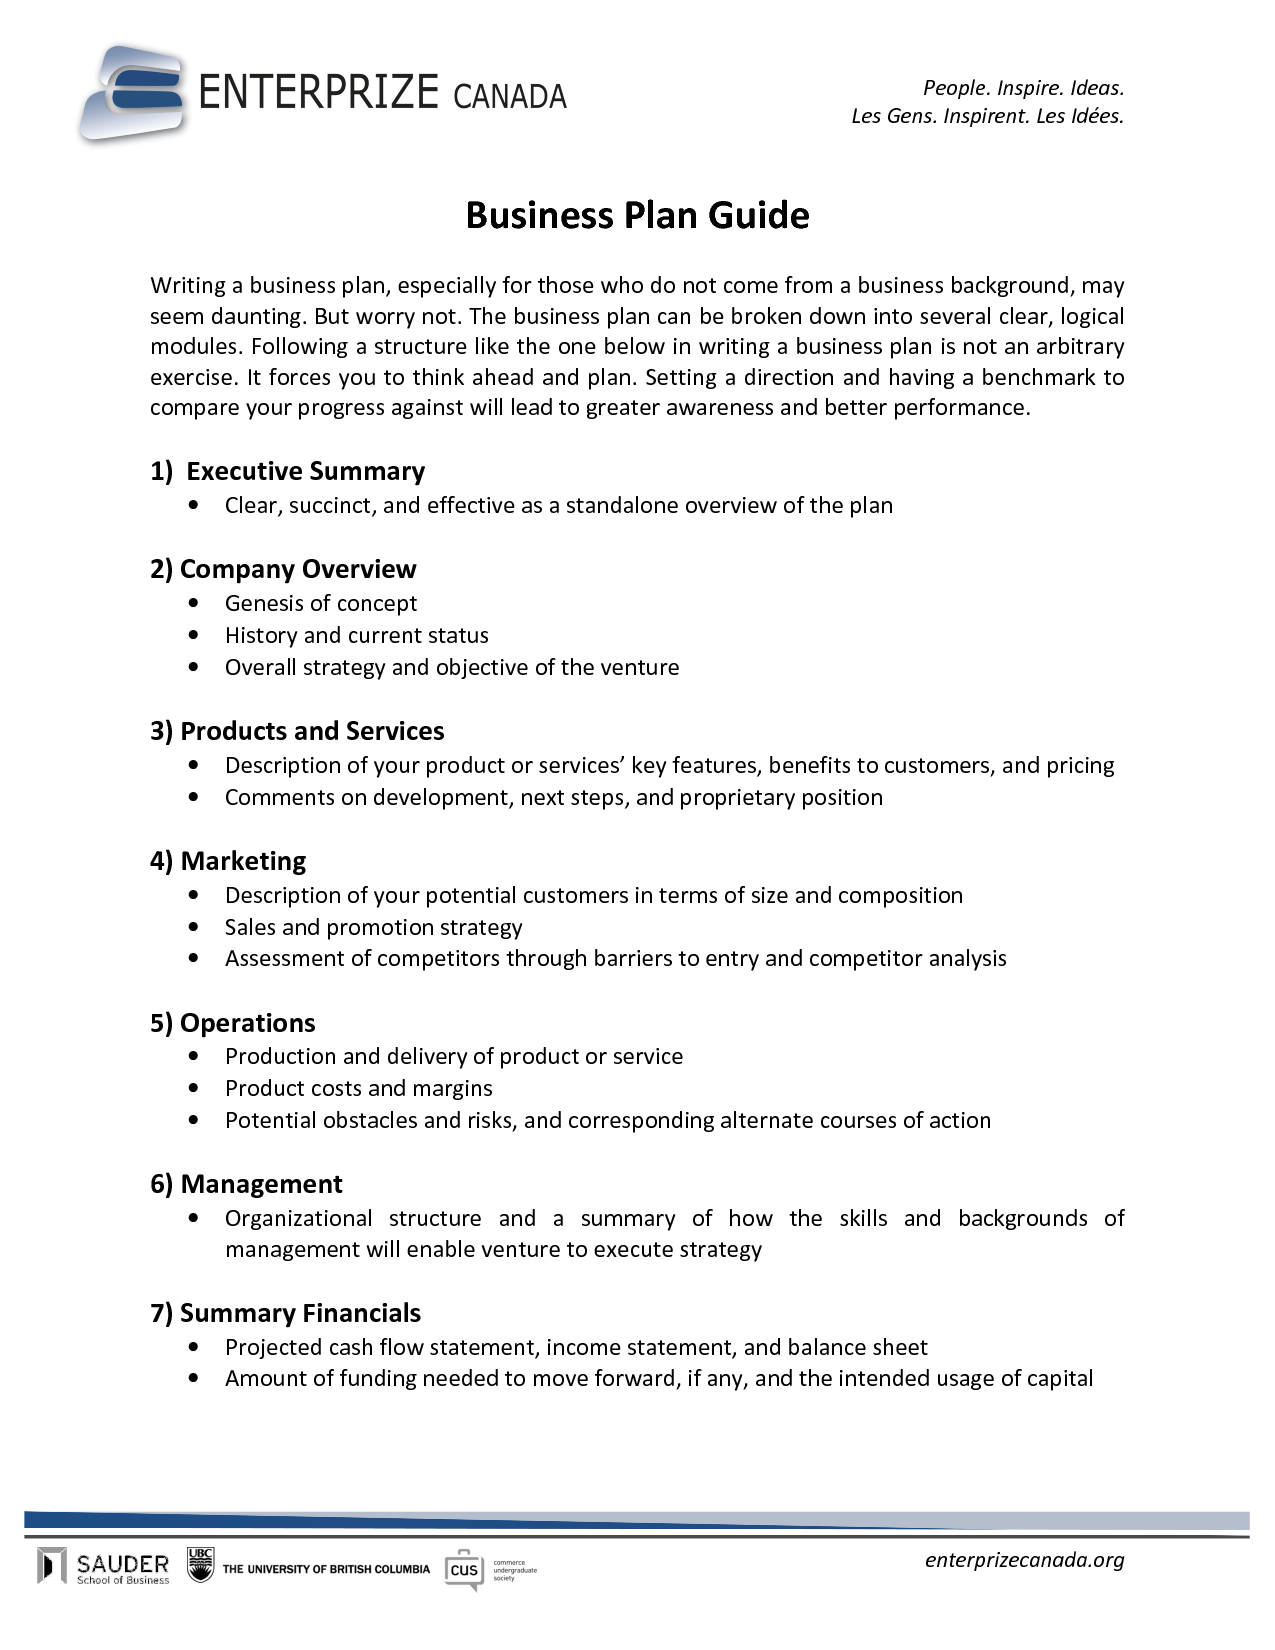 Example of a business plan outline engneforic example of a business plan outline business plan format dzeo tk example of a business plan outline cheaphphosting Images